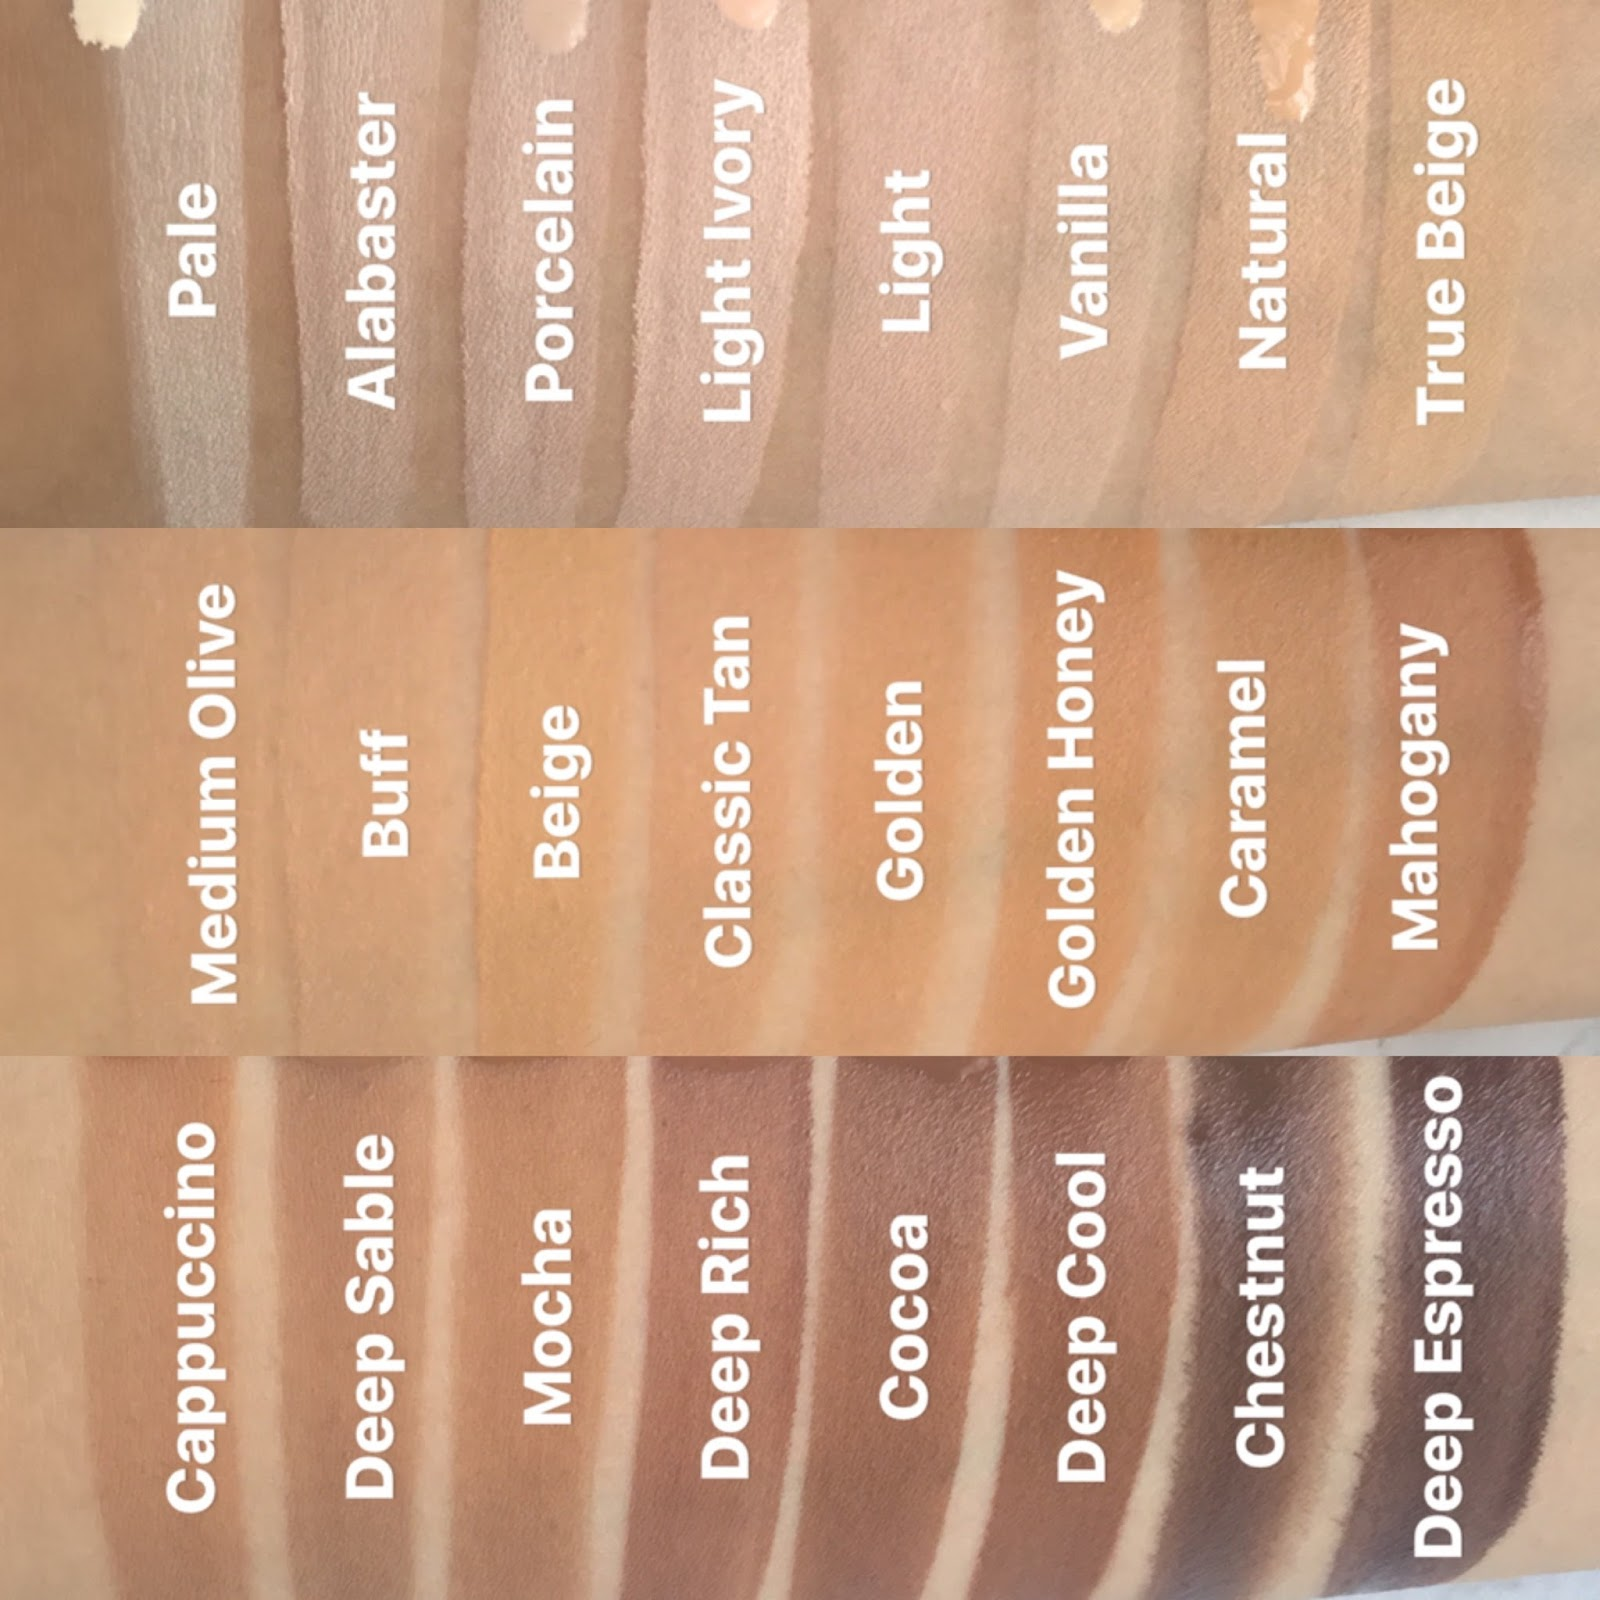 Makeup revolution concealer swatches comparison